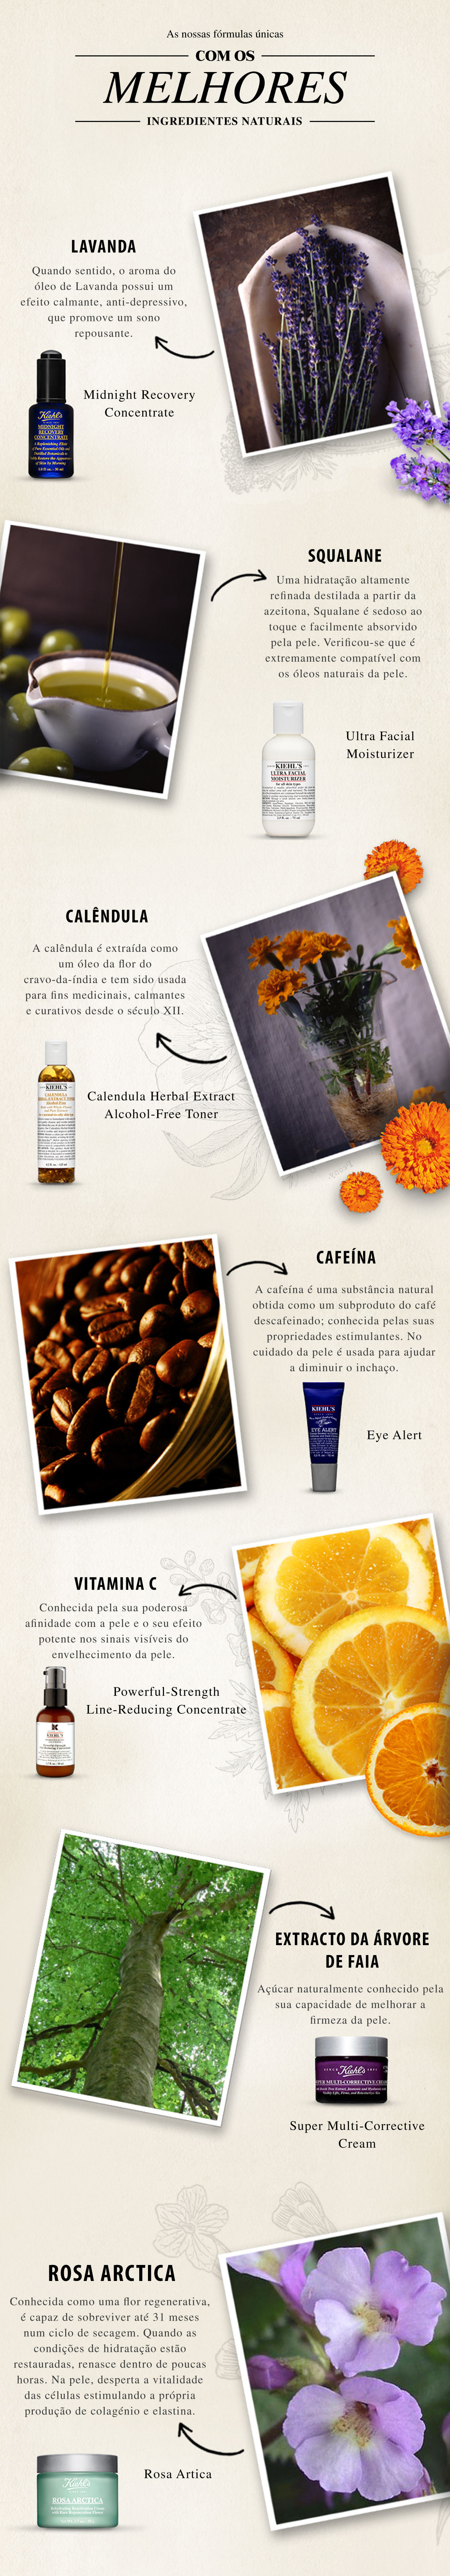 Ingredientes naturais da marca Kiehl's